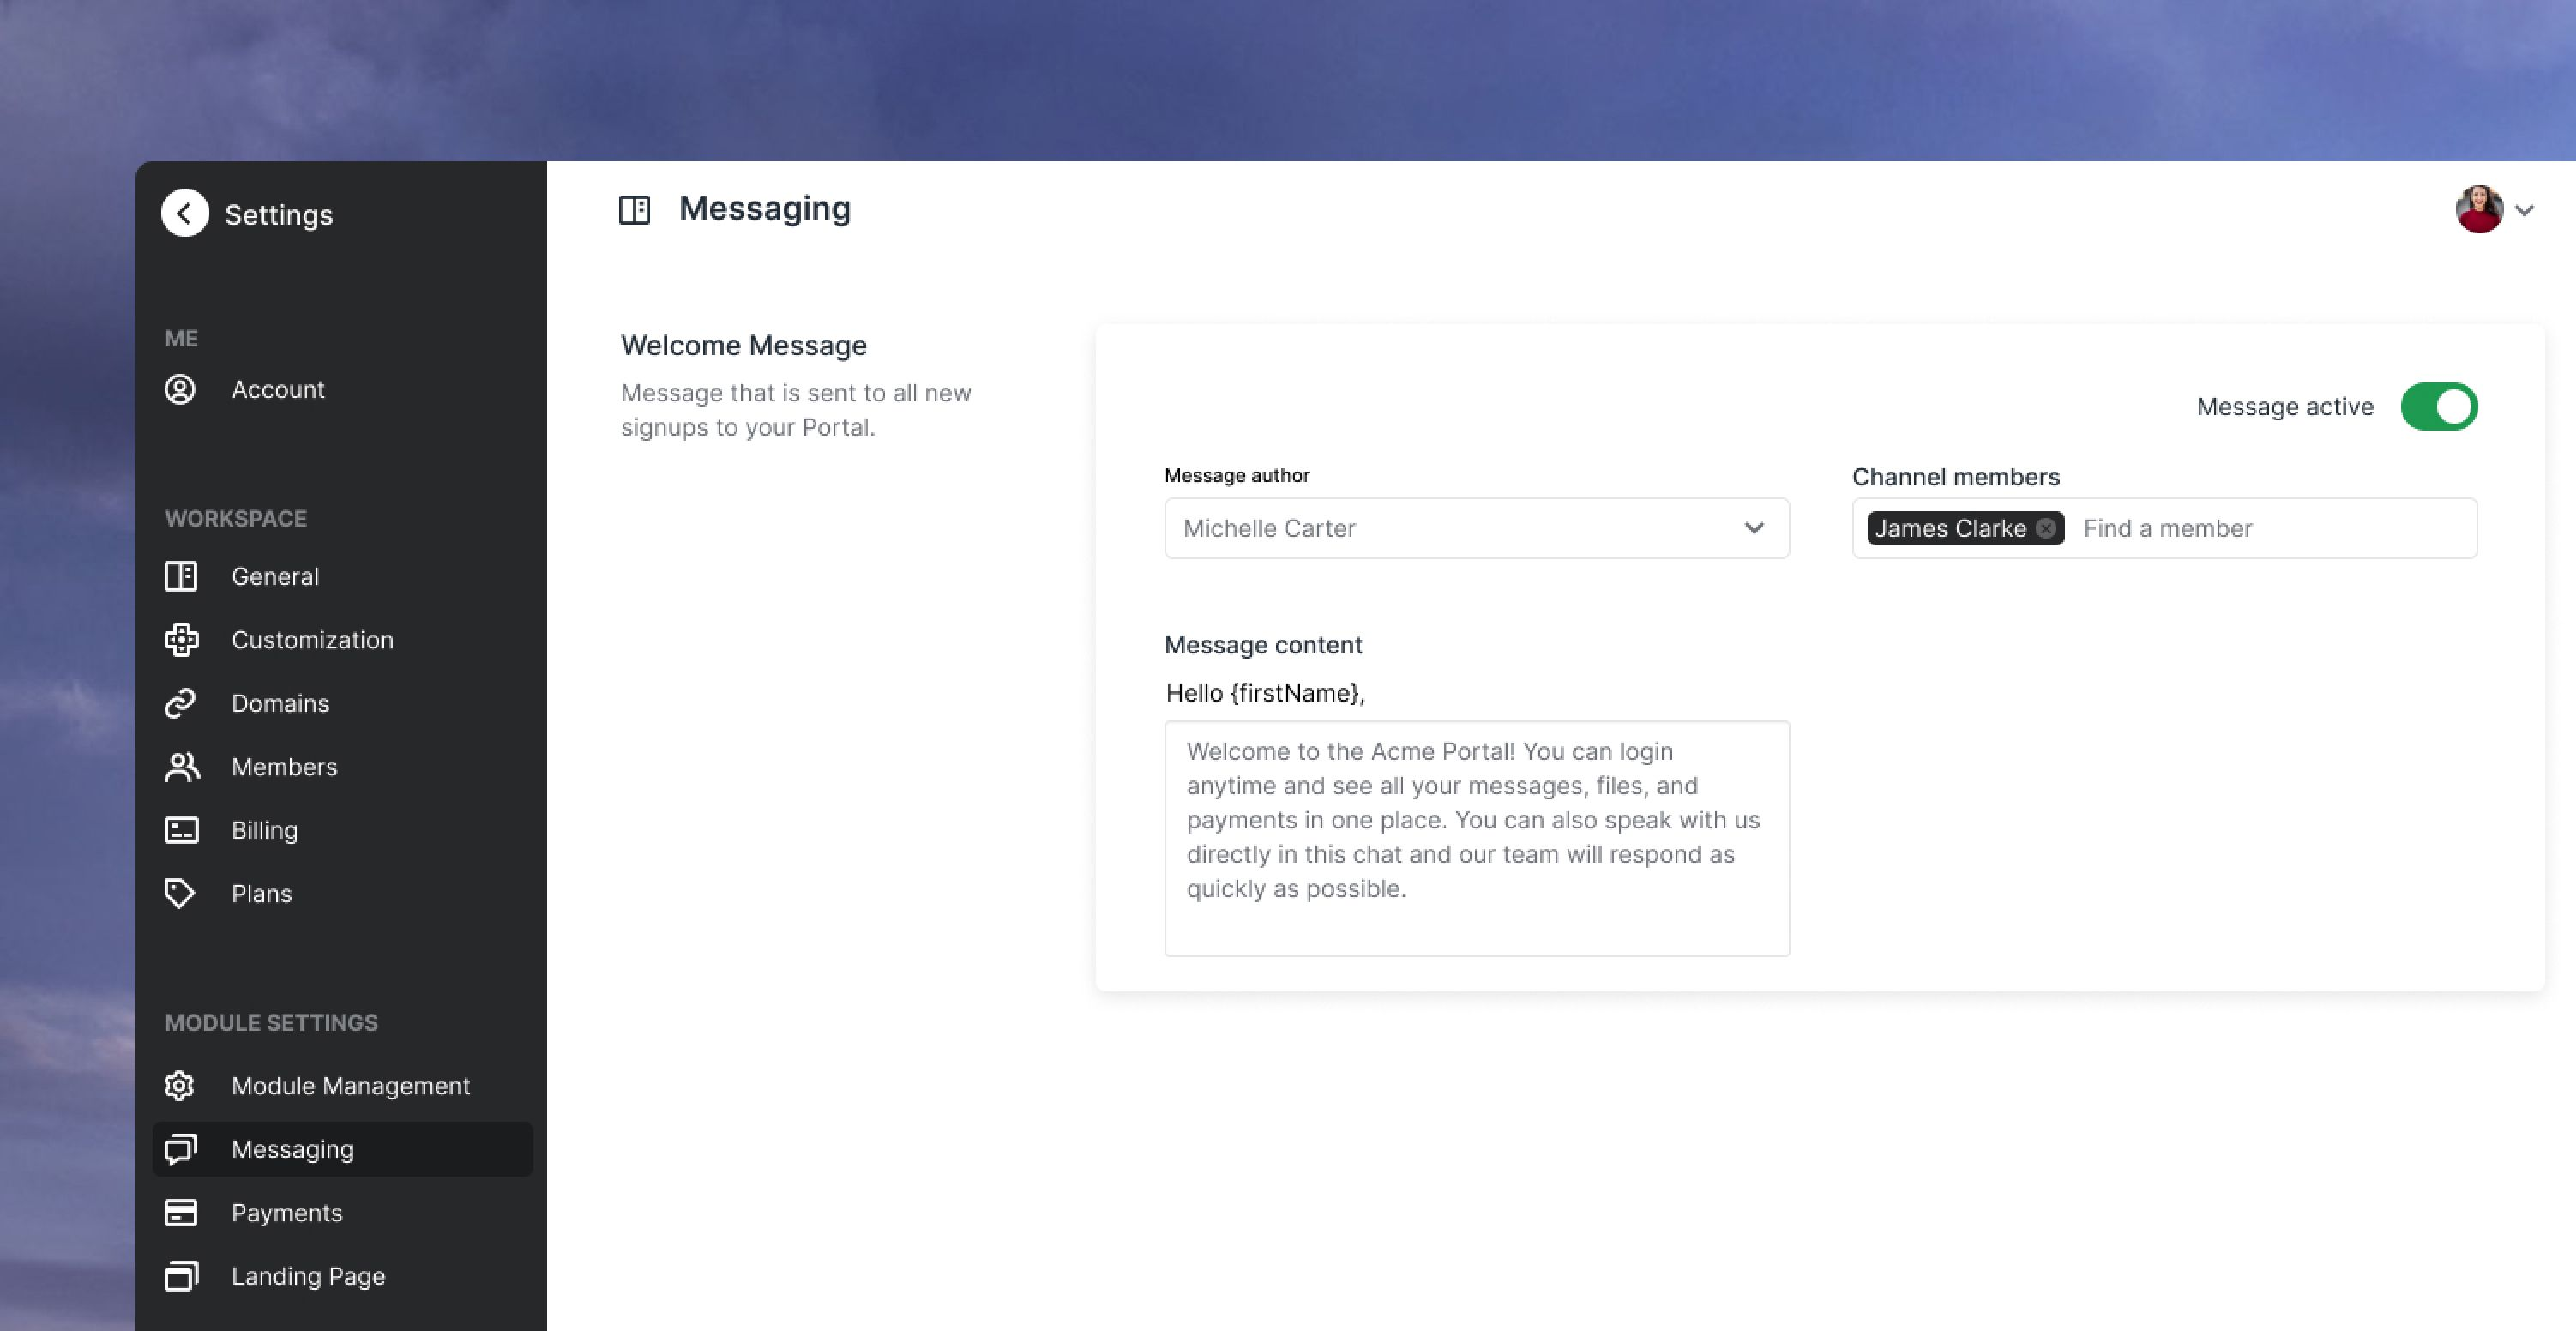 Customize your welcome message in Settings/Messaging